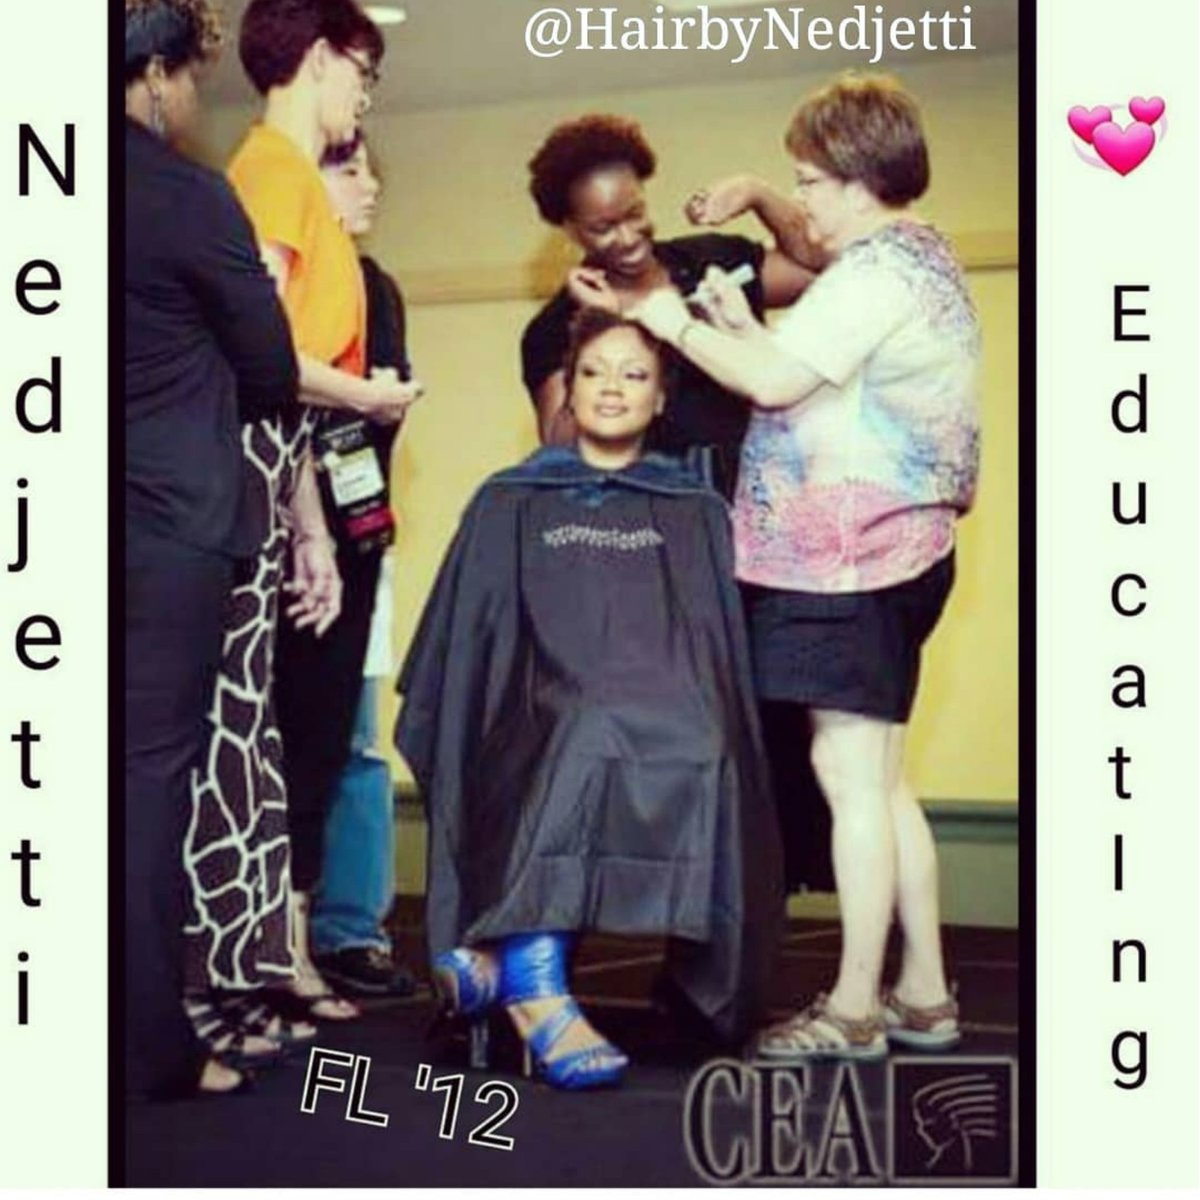 #fbf #HairMeOut ® #NedjettiHarvey 💞sharing my 25+ yrs #NaturalHairCare #HairArtistry passionate skills as a #LOreal #platformEducator of 10yrs✂️  👑#ForTheCulture #Nedjetti #NaturalHair #Cosmetologist #Educator in #Orlando '12 along w/my #Cosmetologists #SalonOwners peers🤛🏾